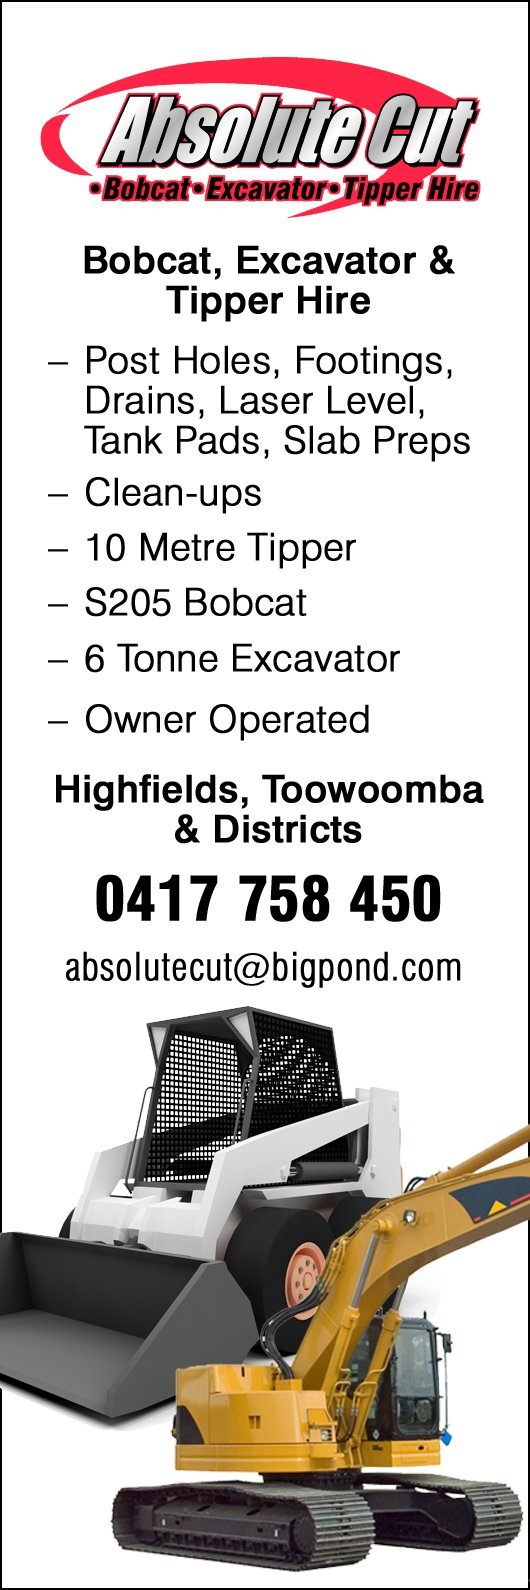 Absolute Cut Bobcat Excavator Tipper Hire - Excavation & Earthmoving